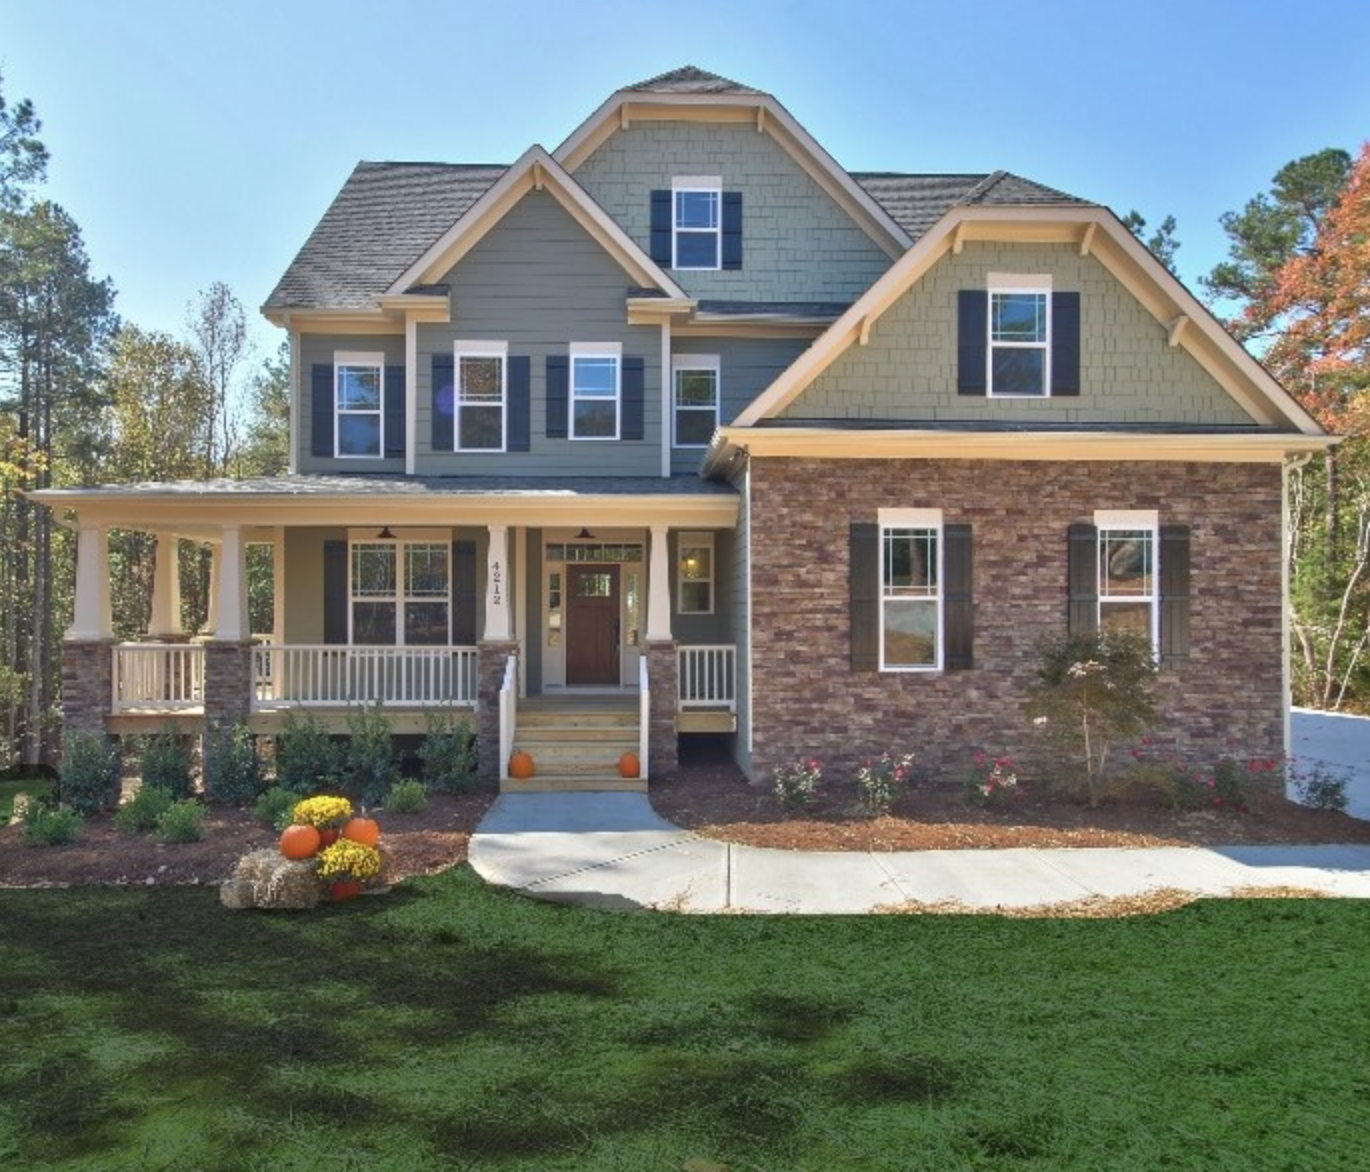 Lovely Green Exterior For A Capitol City Homes Raleigh Nc New Home Builders Community Design